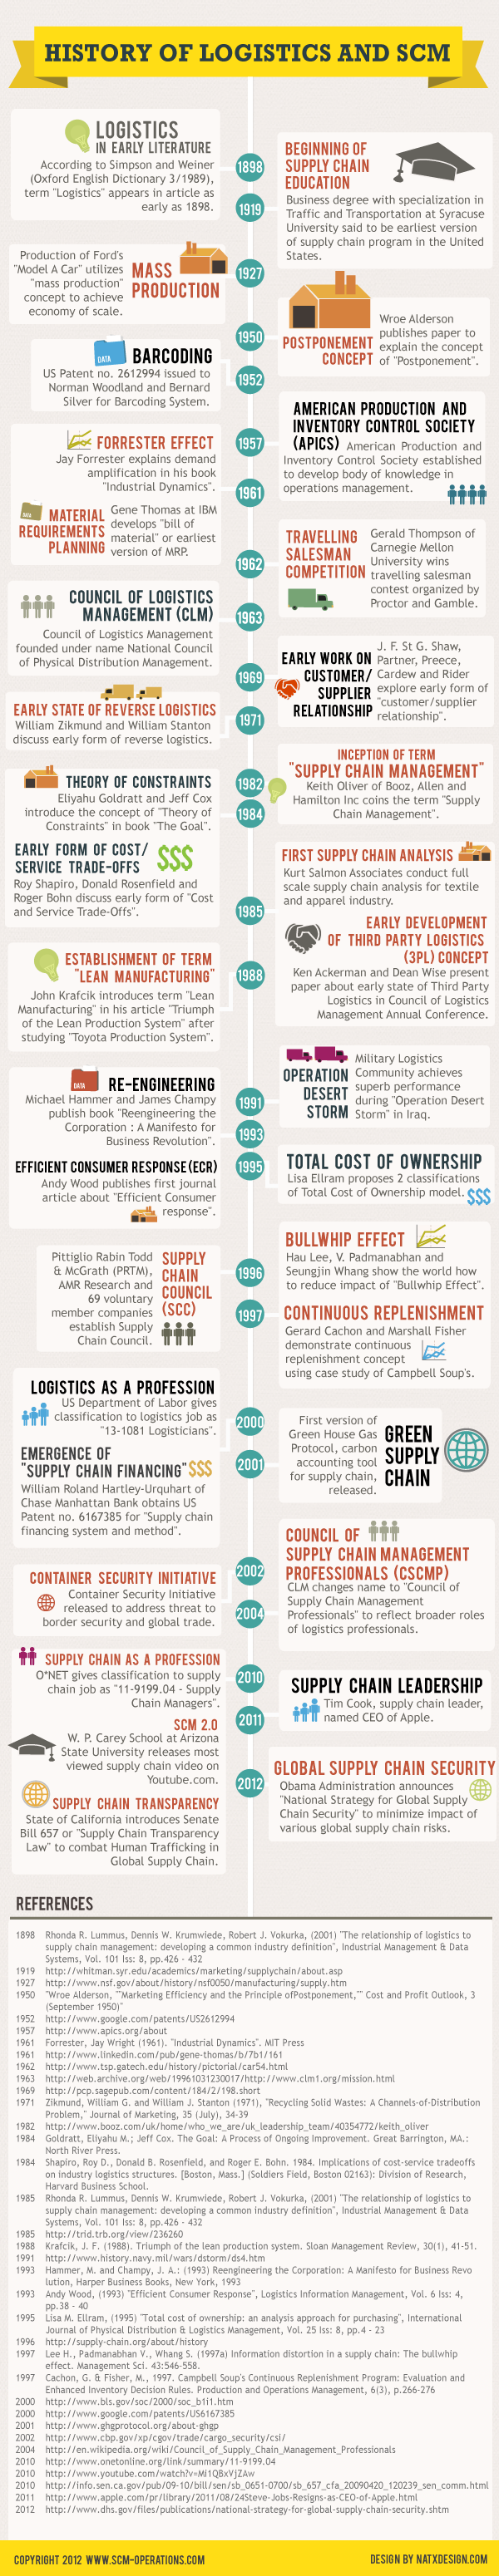 An informative infographic on the history of logistics